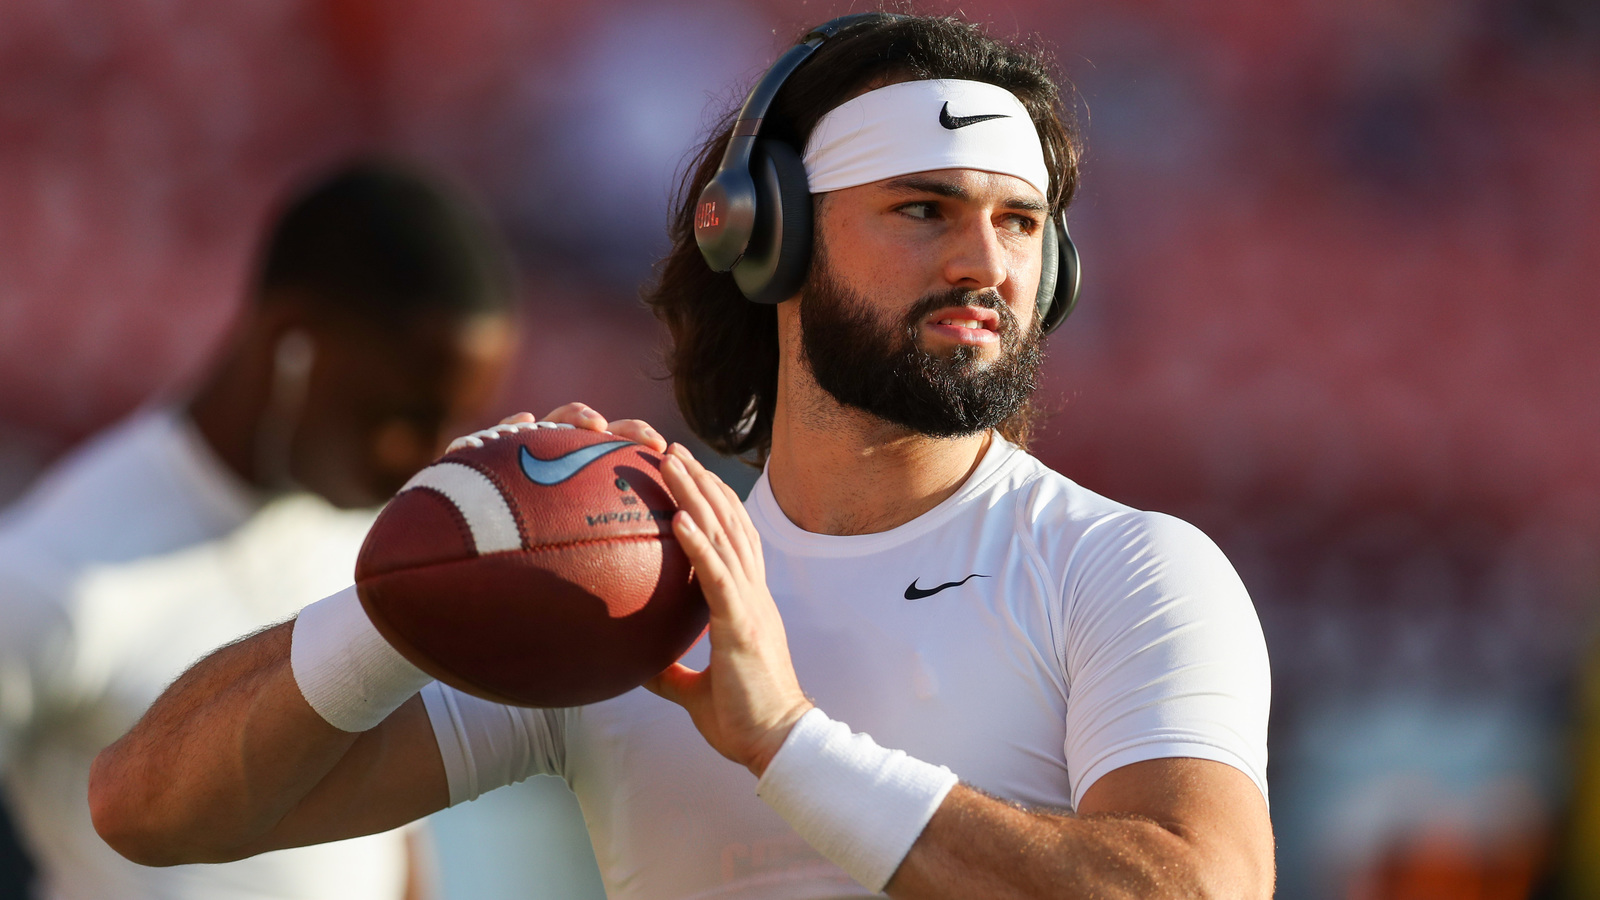 Nascar Racing Games >> Will Grier's wife Jeanne Marie is a former Bucs cheerleader | Yardbarker.com